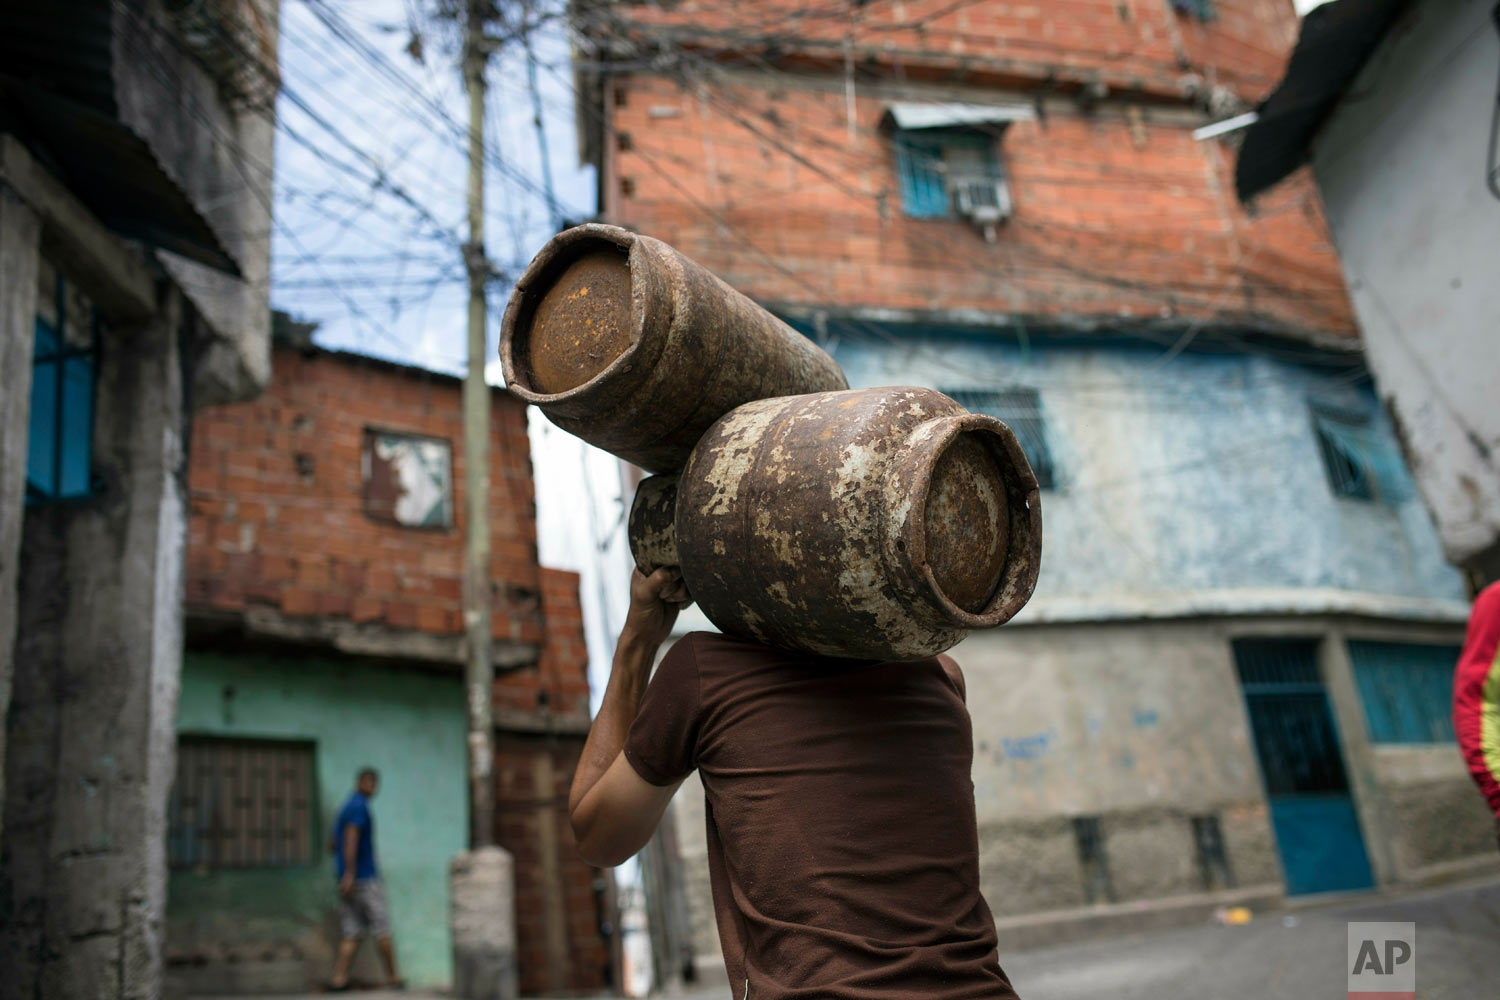 A man carries subsidized gas cylinders provided by the government for 0.13 US dollars in Caracas, Venezuela, Monday, May 13, 2019. (AP Photo/Rodrigo Abd)